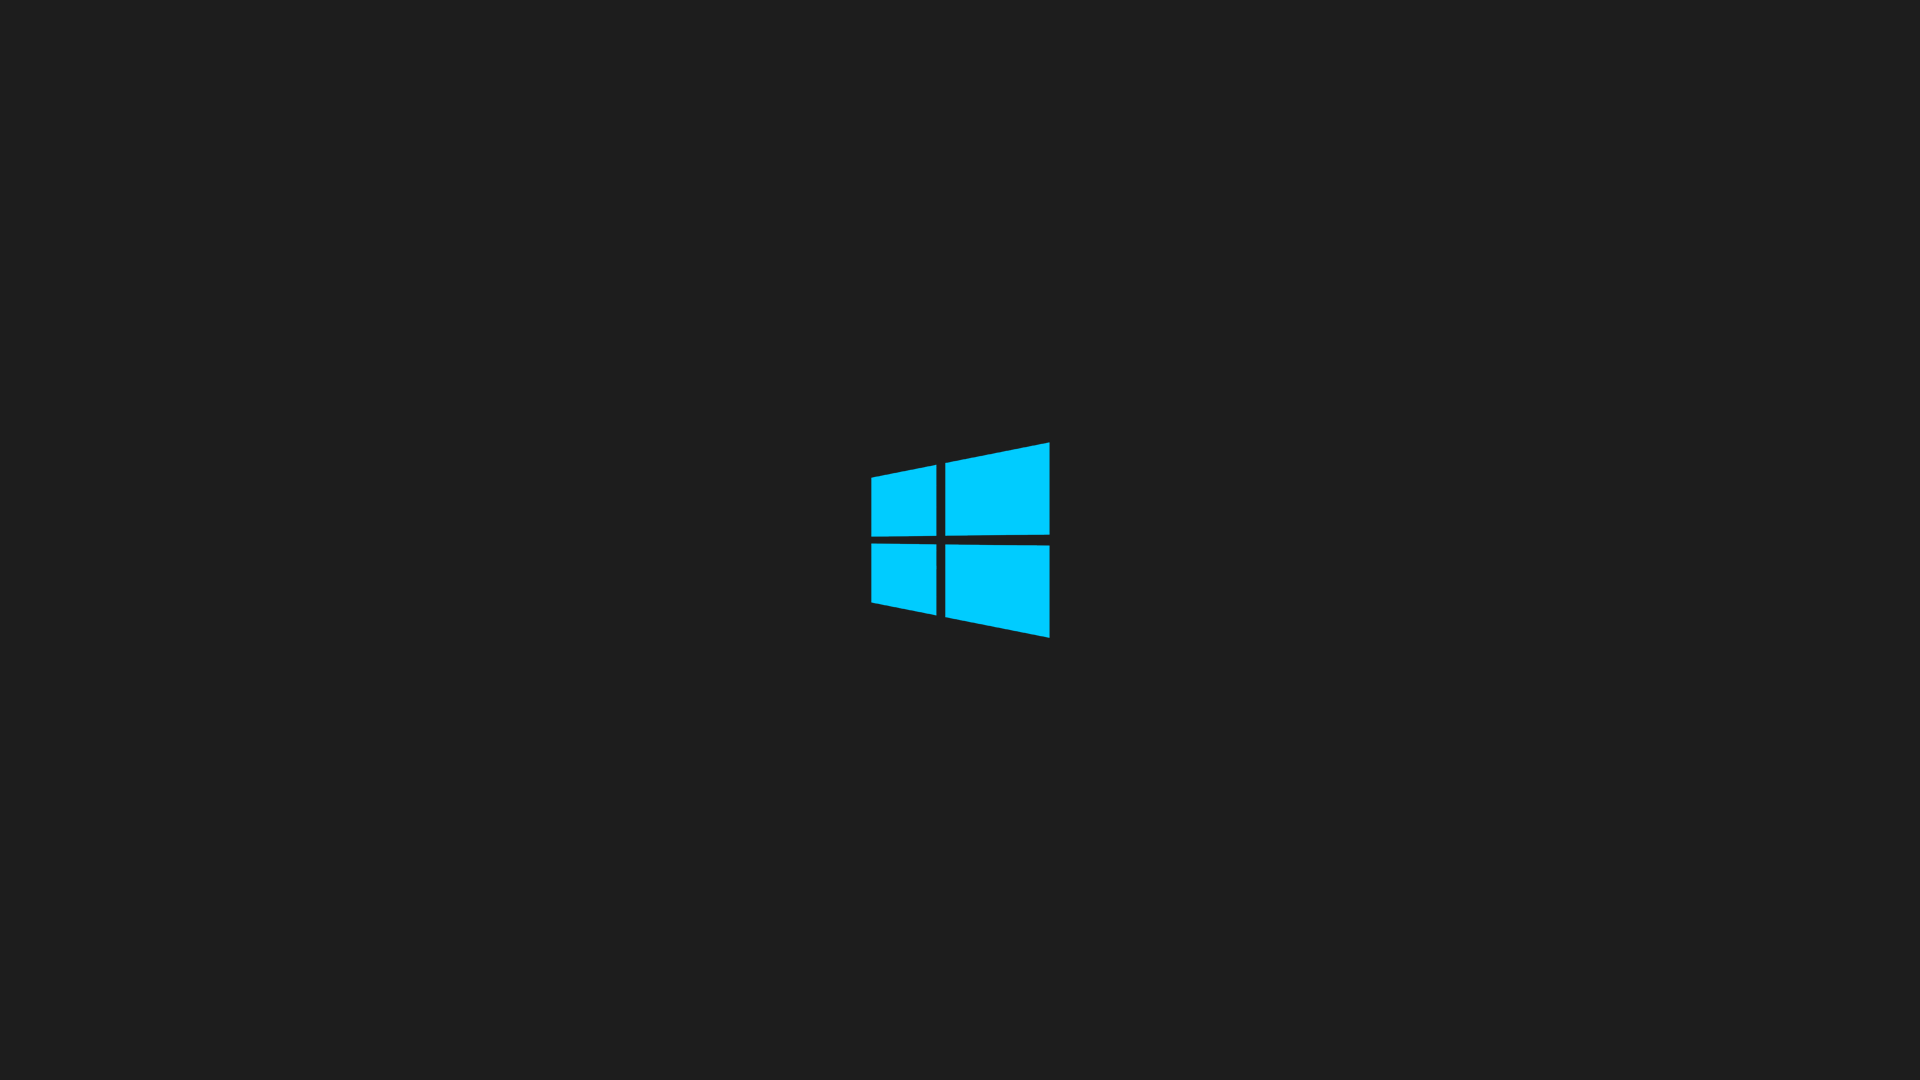 Windows 8 Black Wallpapers Group (91+)